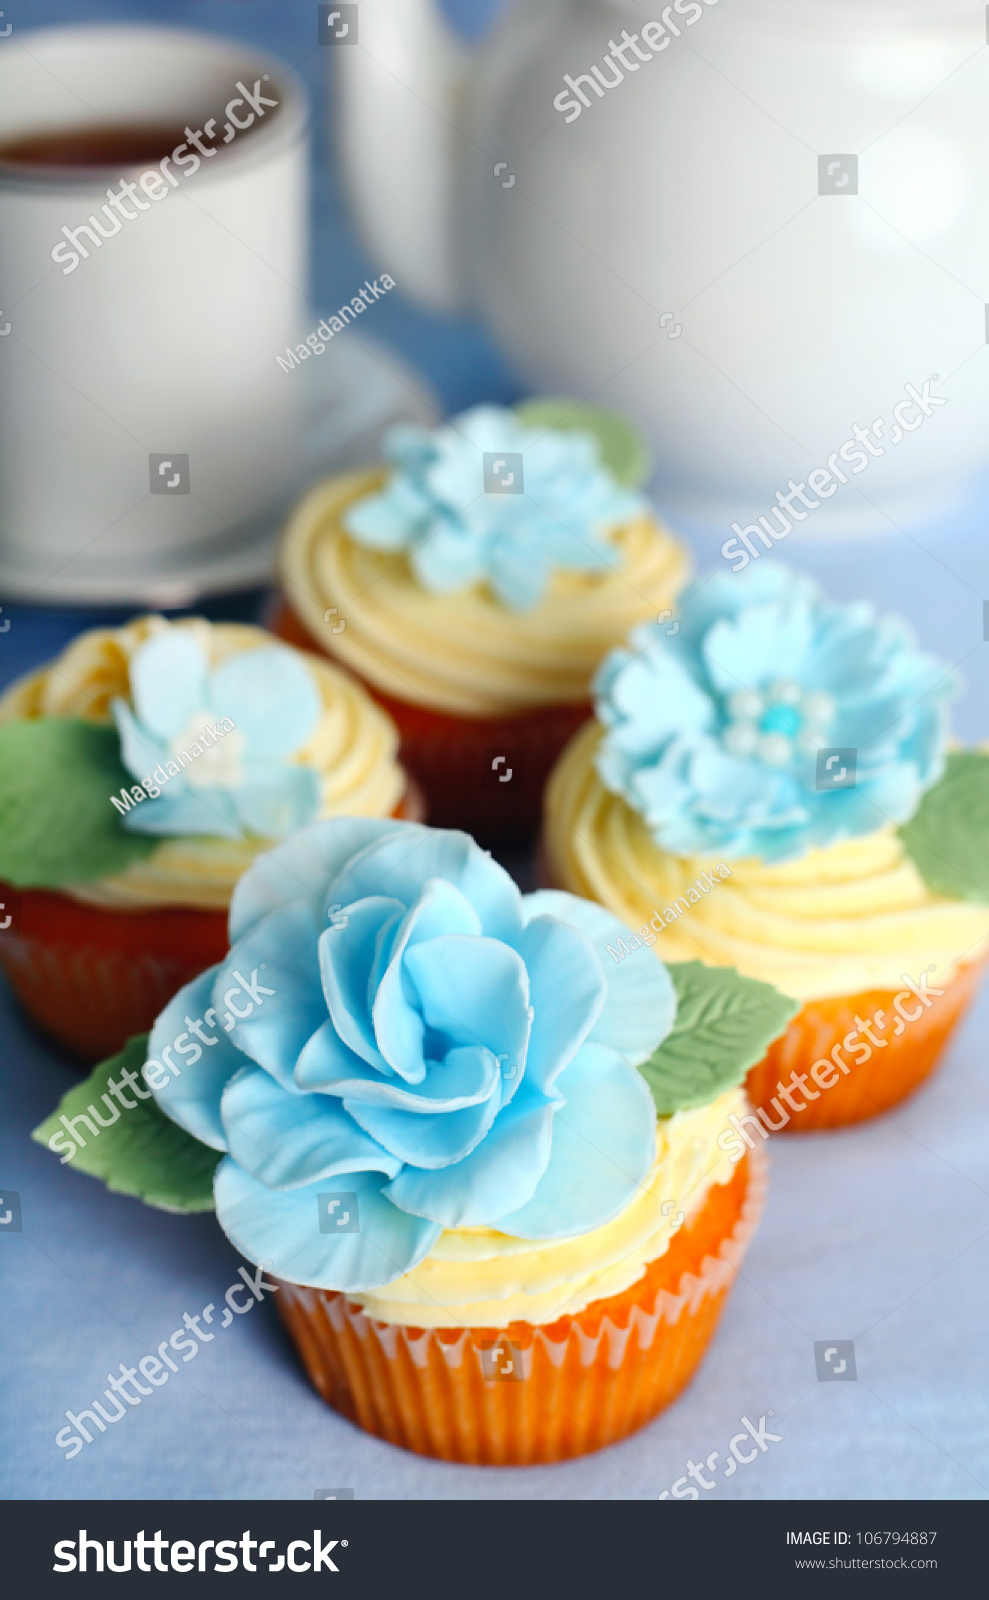 Beautifully decorated cupcakes Preview. Save to a lightbox